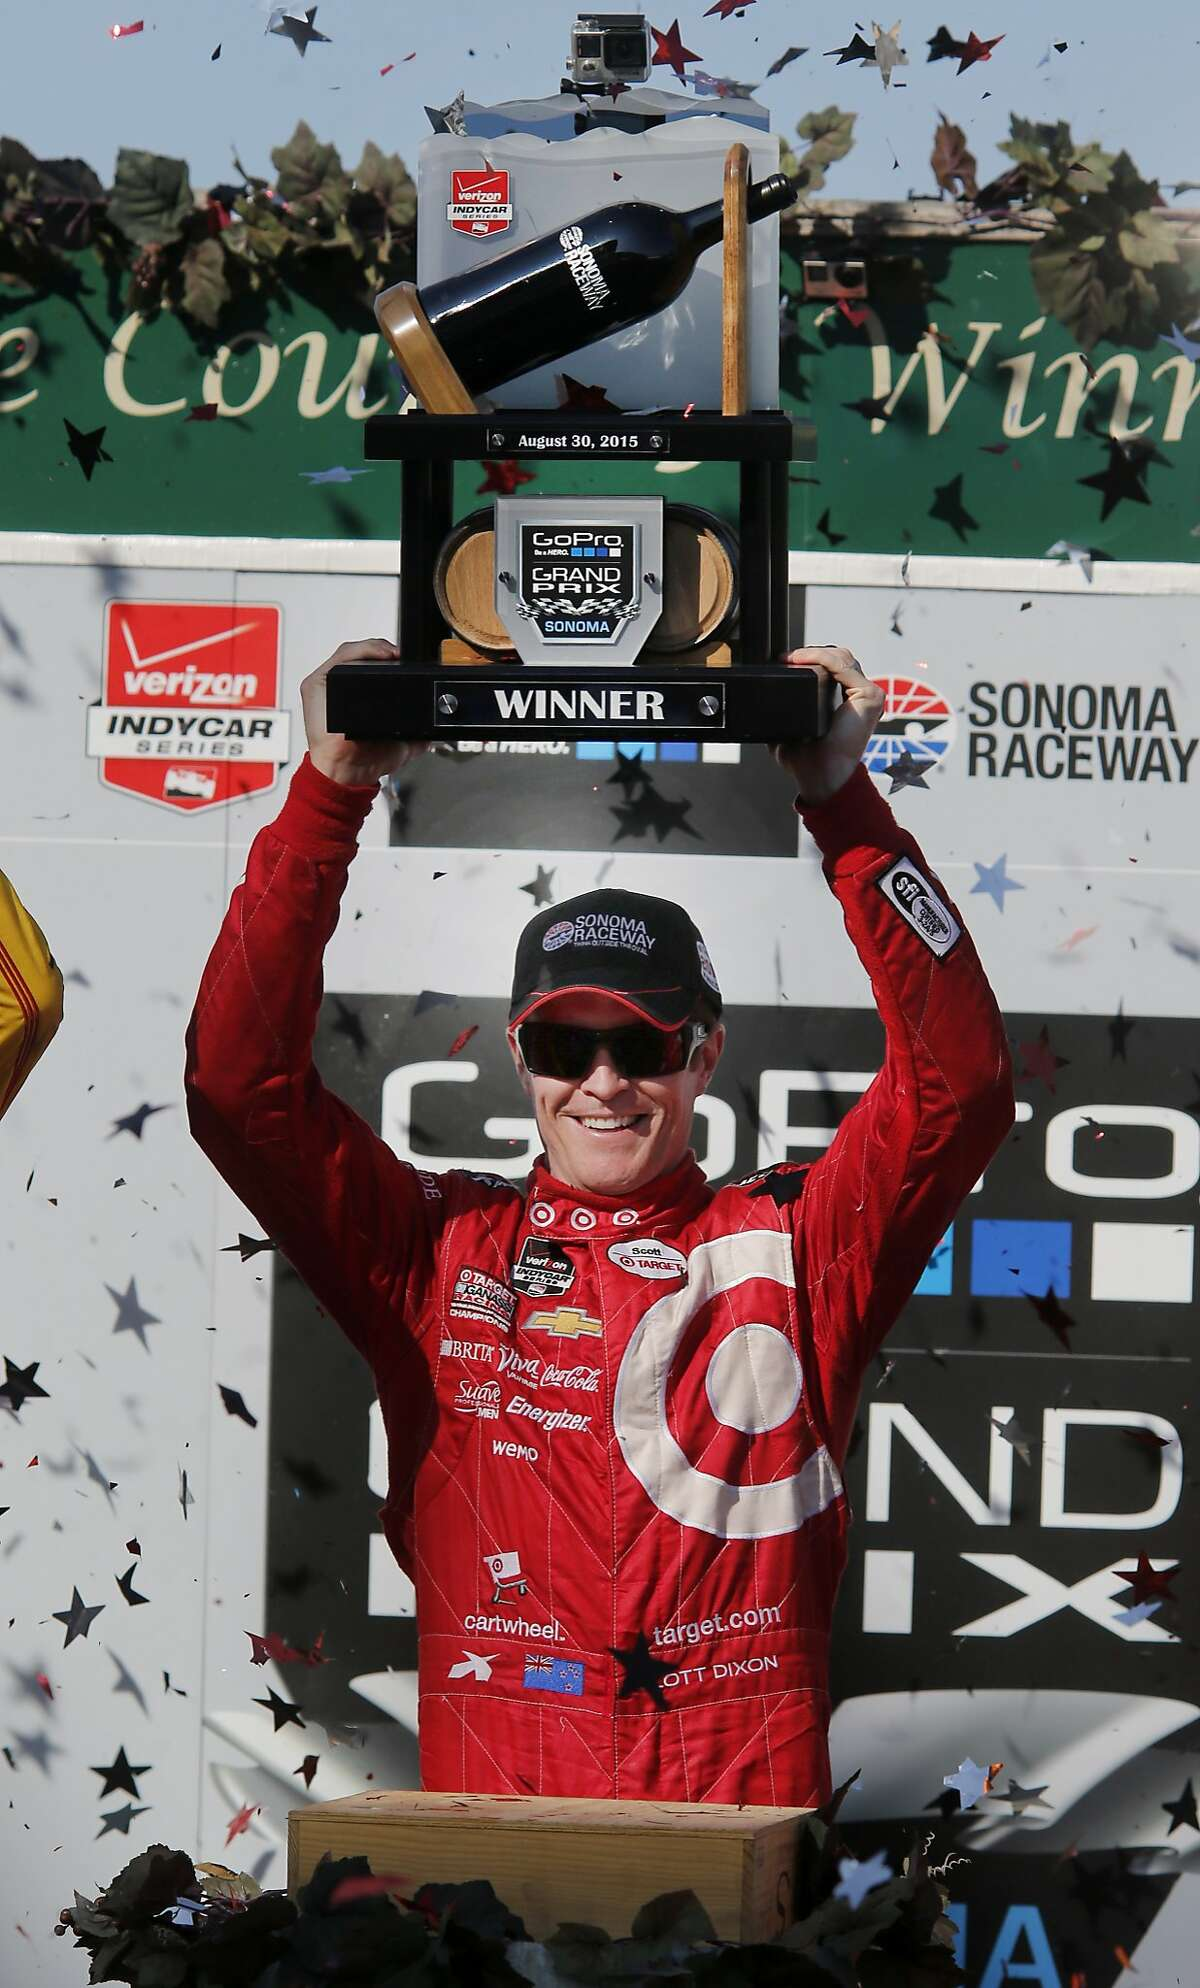 Scott Dixon held up his race trophy as graffiti fell. Scott Dixon won the Go Pro Grand Prix of Sonoma and the overall IndyCar championship for 2015. The IndyCar GoPro Grand Prix of Sonoma attracted thousands of fans to Sonoma Raceway Sunday August 30, 2015.